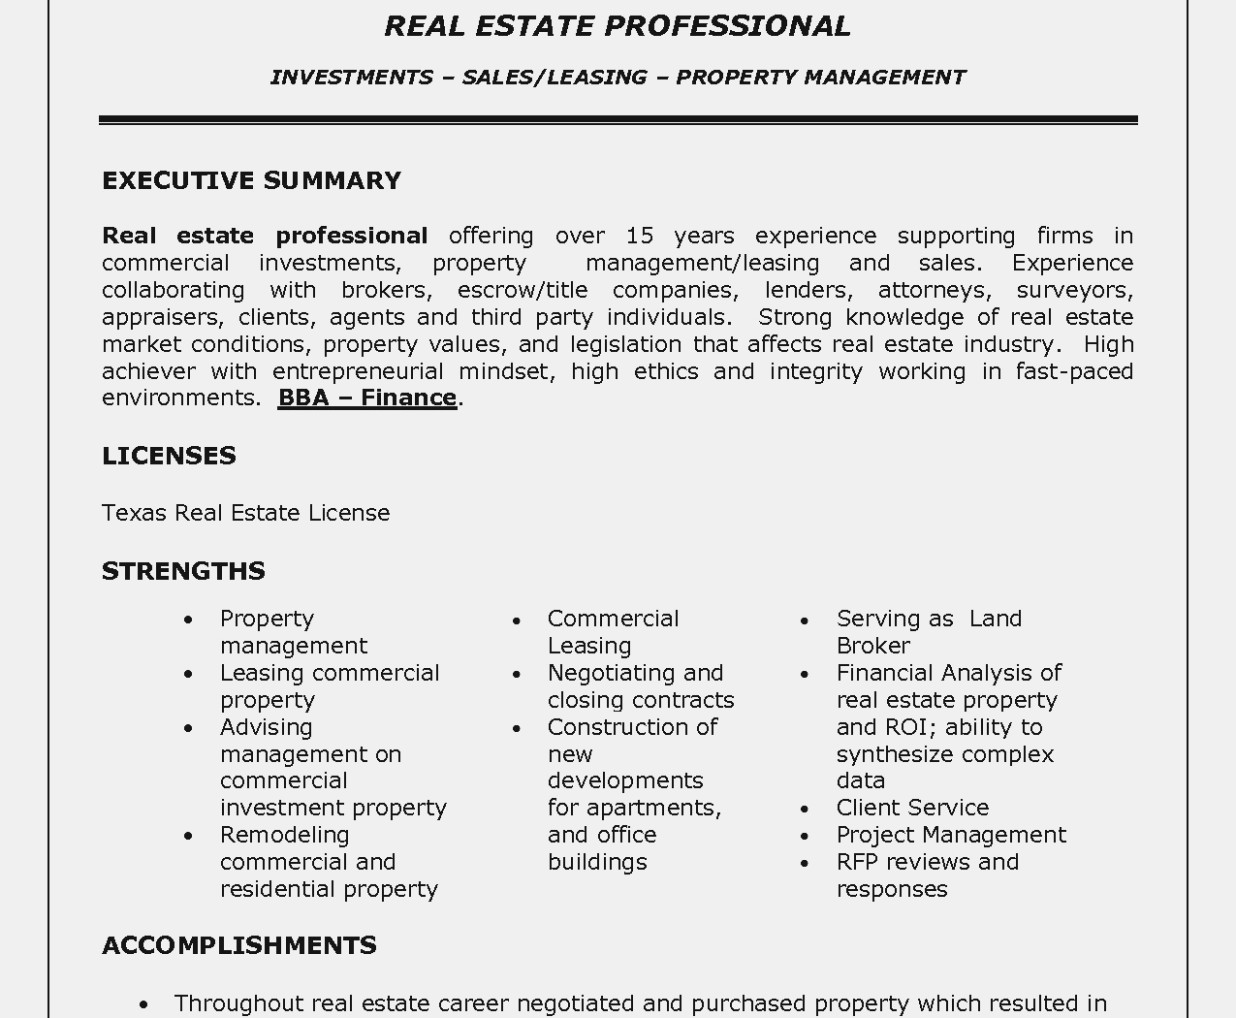 apartment leasing agent resume, apartment leasing agent resume objective, apartment leasing agent resume example 2019, resume for apartment leasing agent with no experience apartment leasing agent job description resume apartment leasing agent job description for resume 2020 resume for apartment leasing agent resume objective for apartment leasing agent apartment leasing agent resume sample